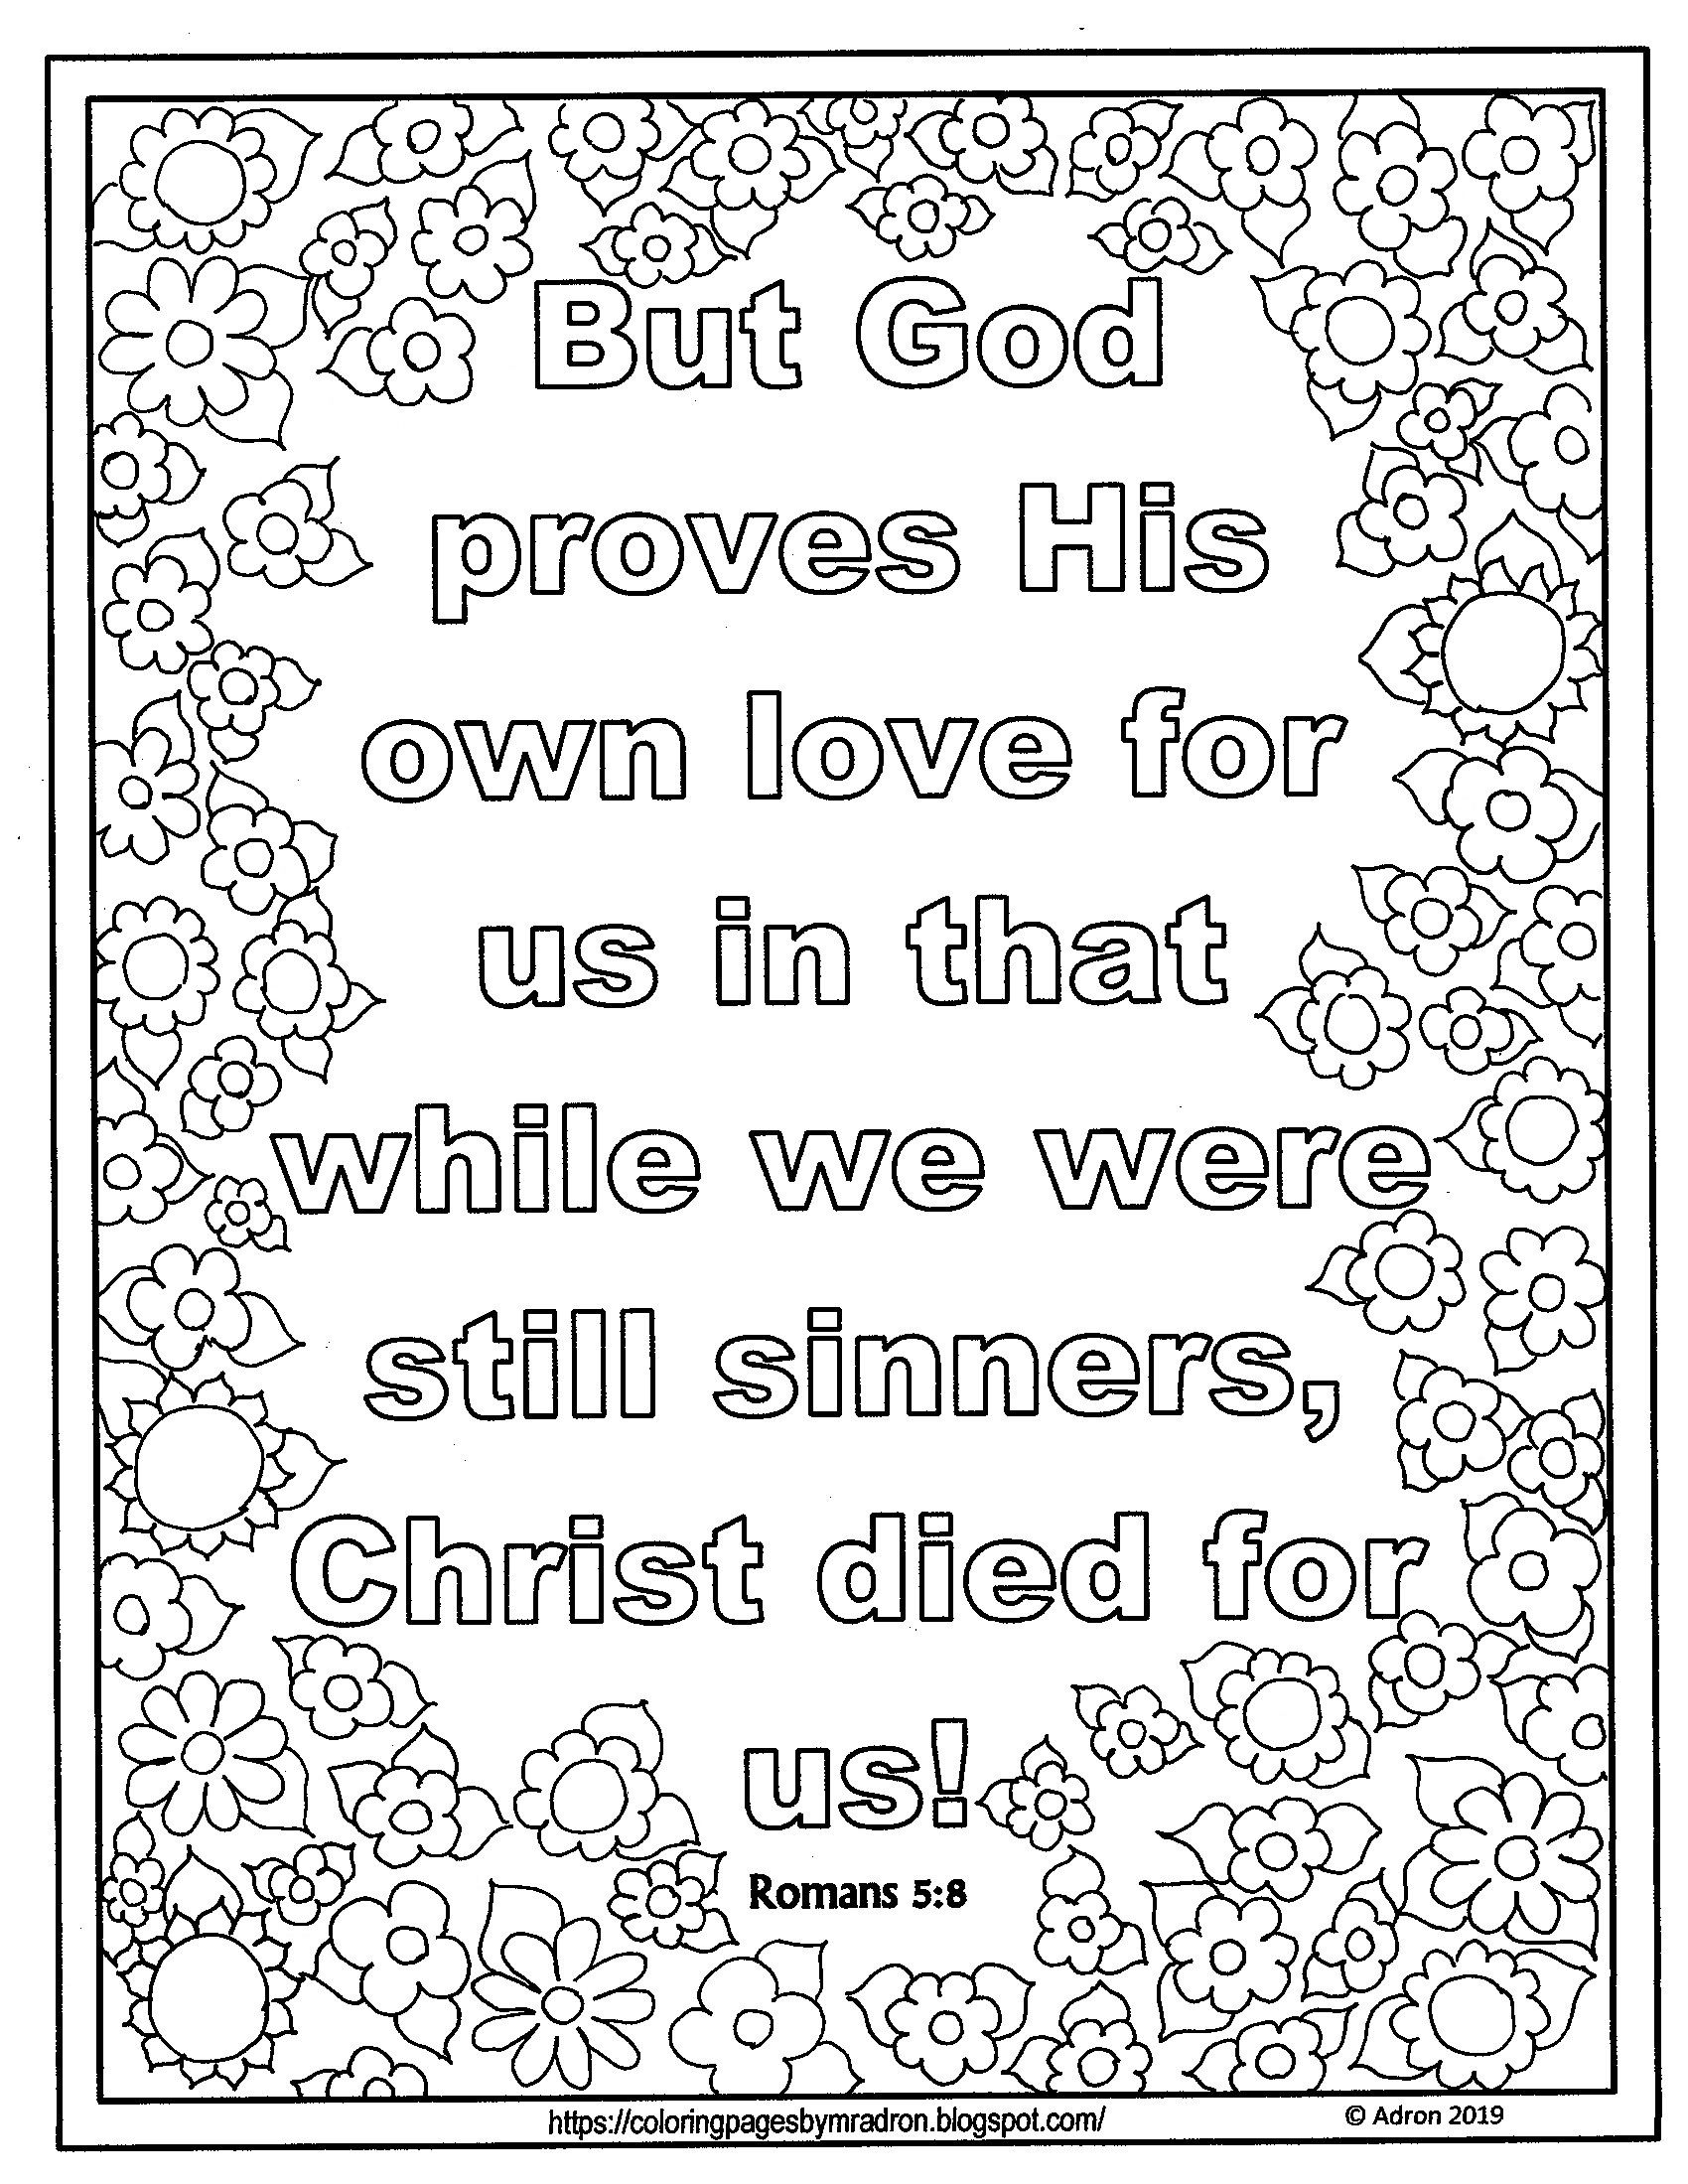 romans 5 8 coloring sheet god works for our good coloring pages romans bible 8 sheet coloring 5 romans